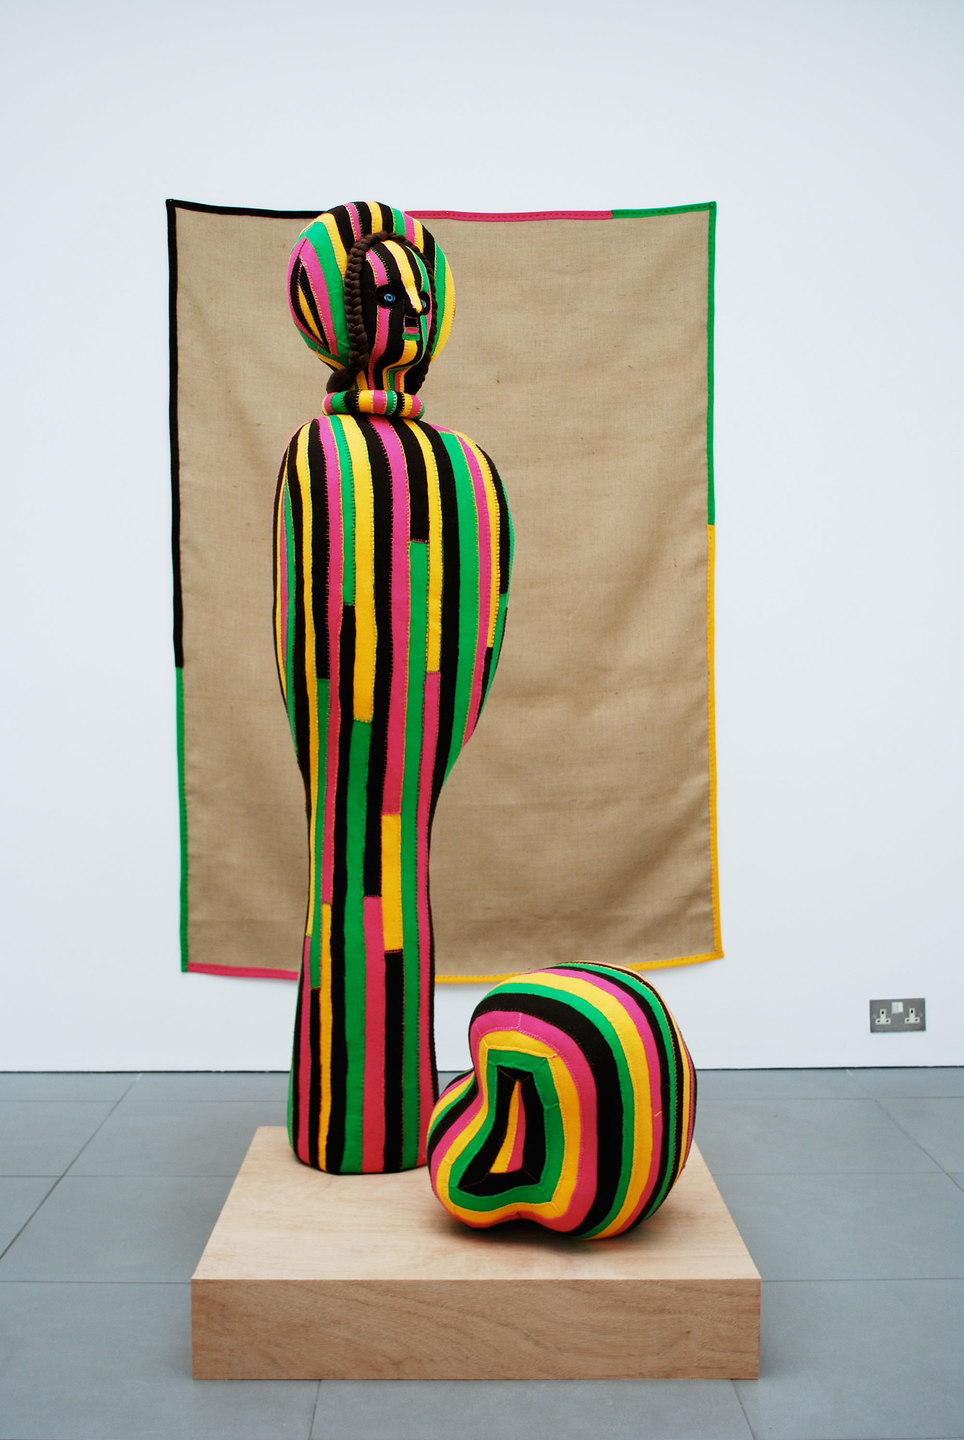 Jonathan Baldock, Mother and Child, 2010, Felt, thread, foam, wood, acrylic paint, Hessian, dolls eyes. (h.1900mm x w.840mm x d.840mm), Cell Project Space